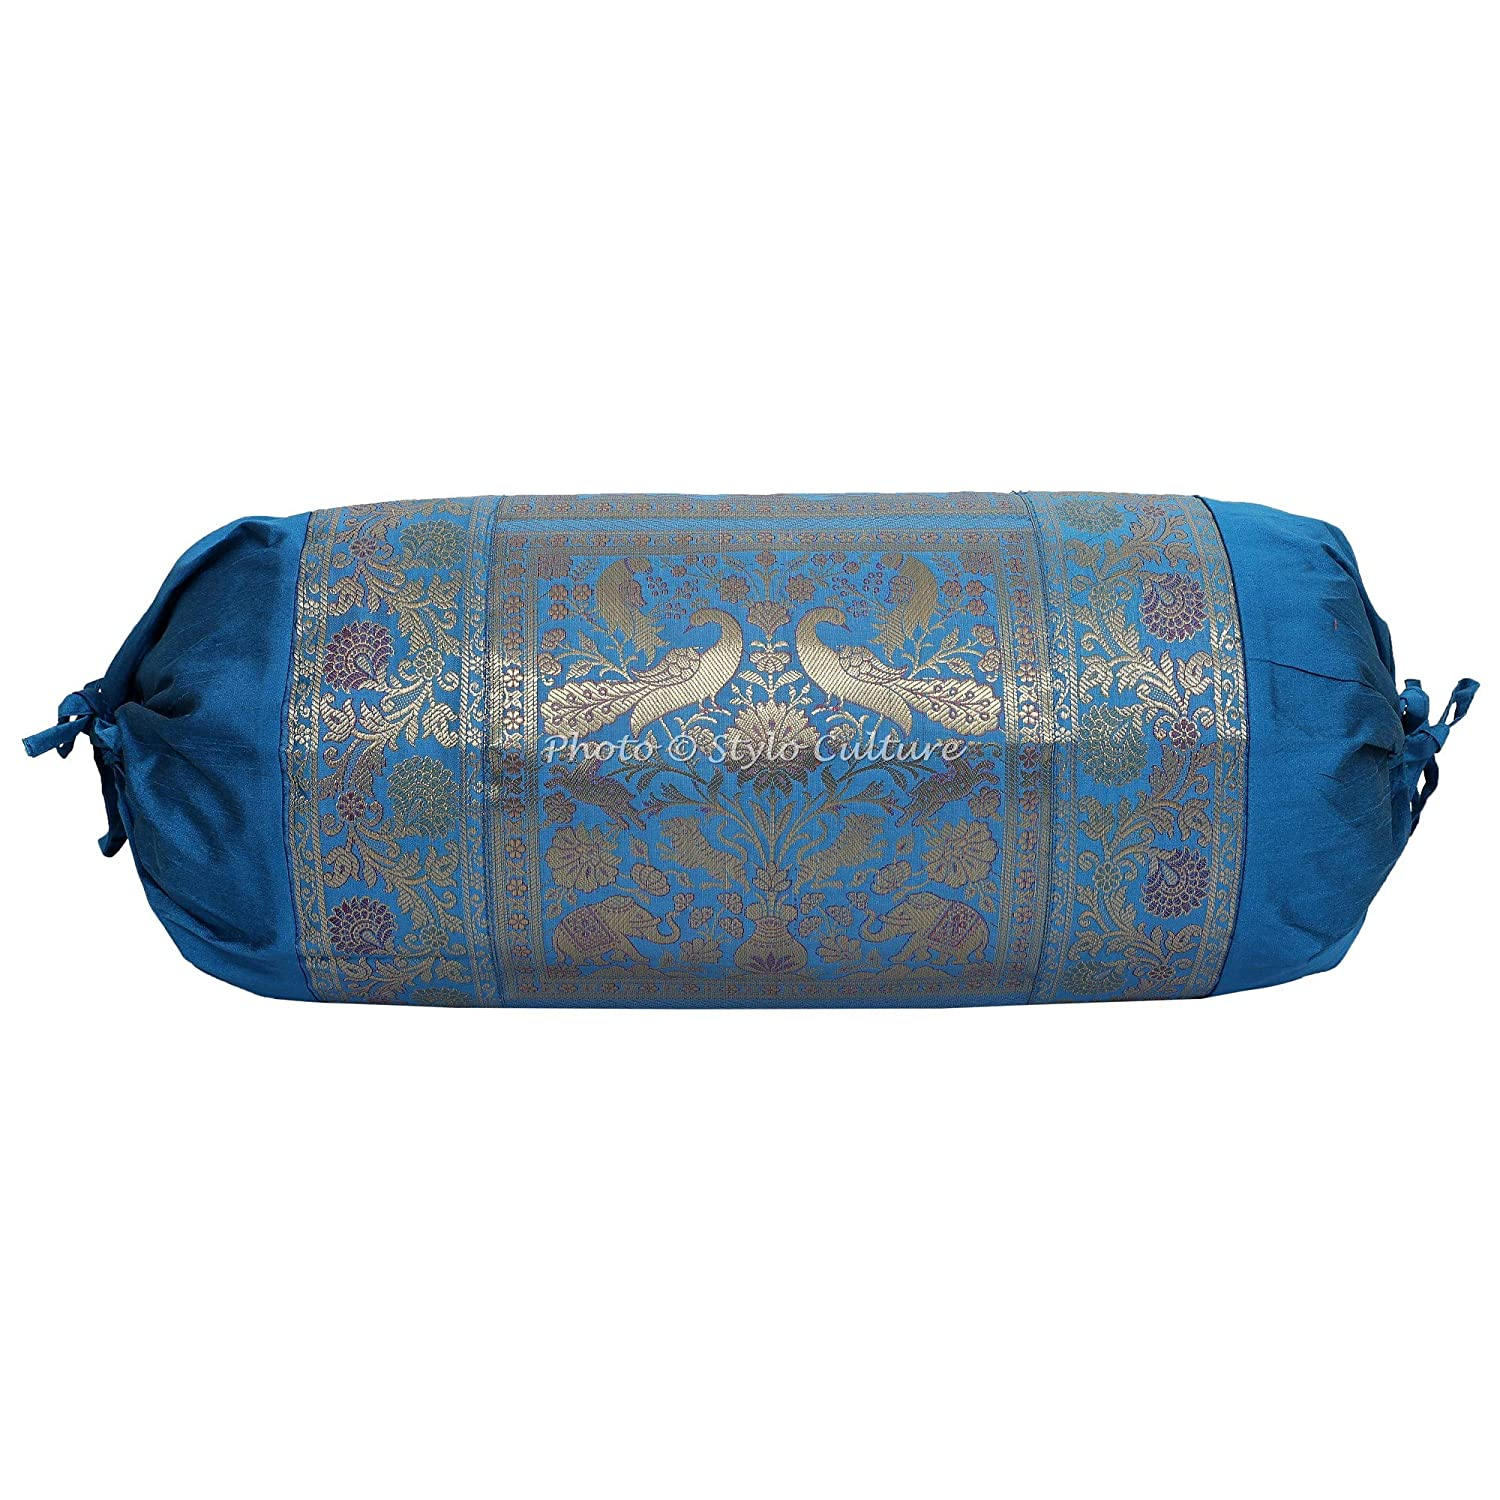 Stylo Culture Traditional Polydupion Cylindrical Yoga Bolster Pillow Cover Blue Elephant Jacquard Brocade Border Large Sofa Round Cylinder Cushion ...